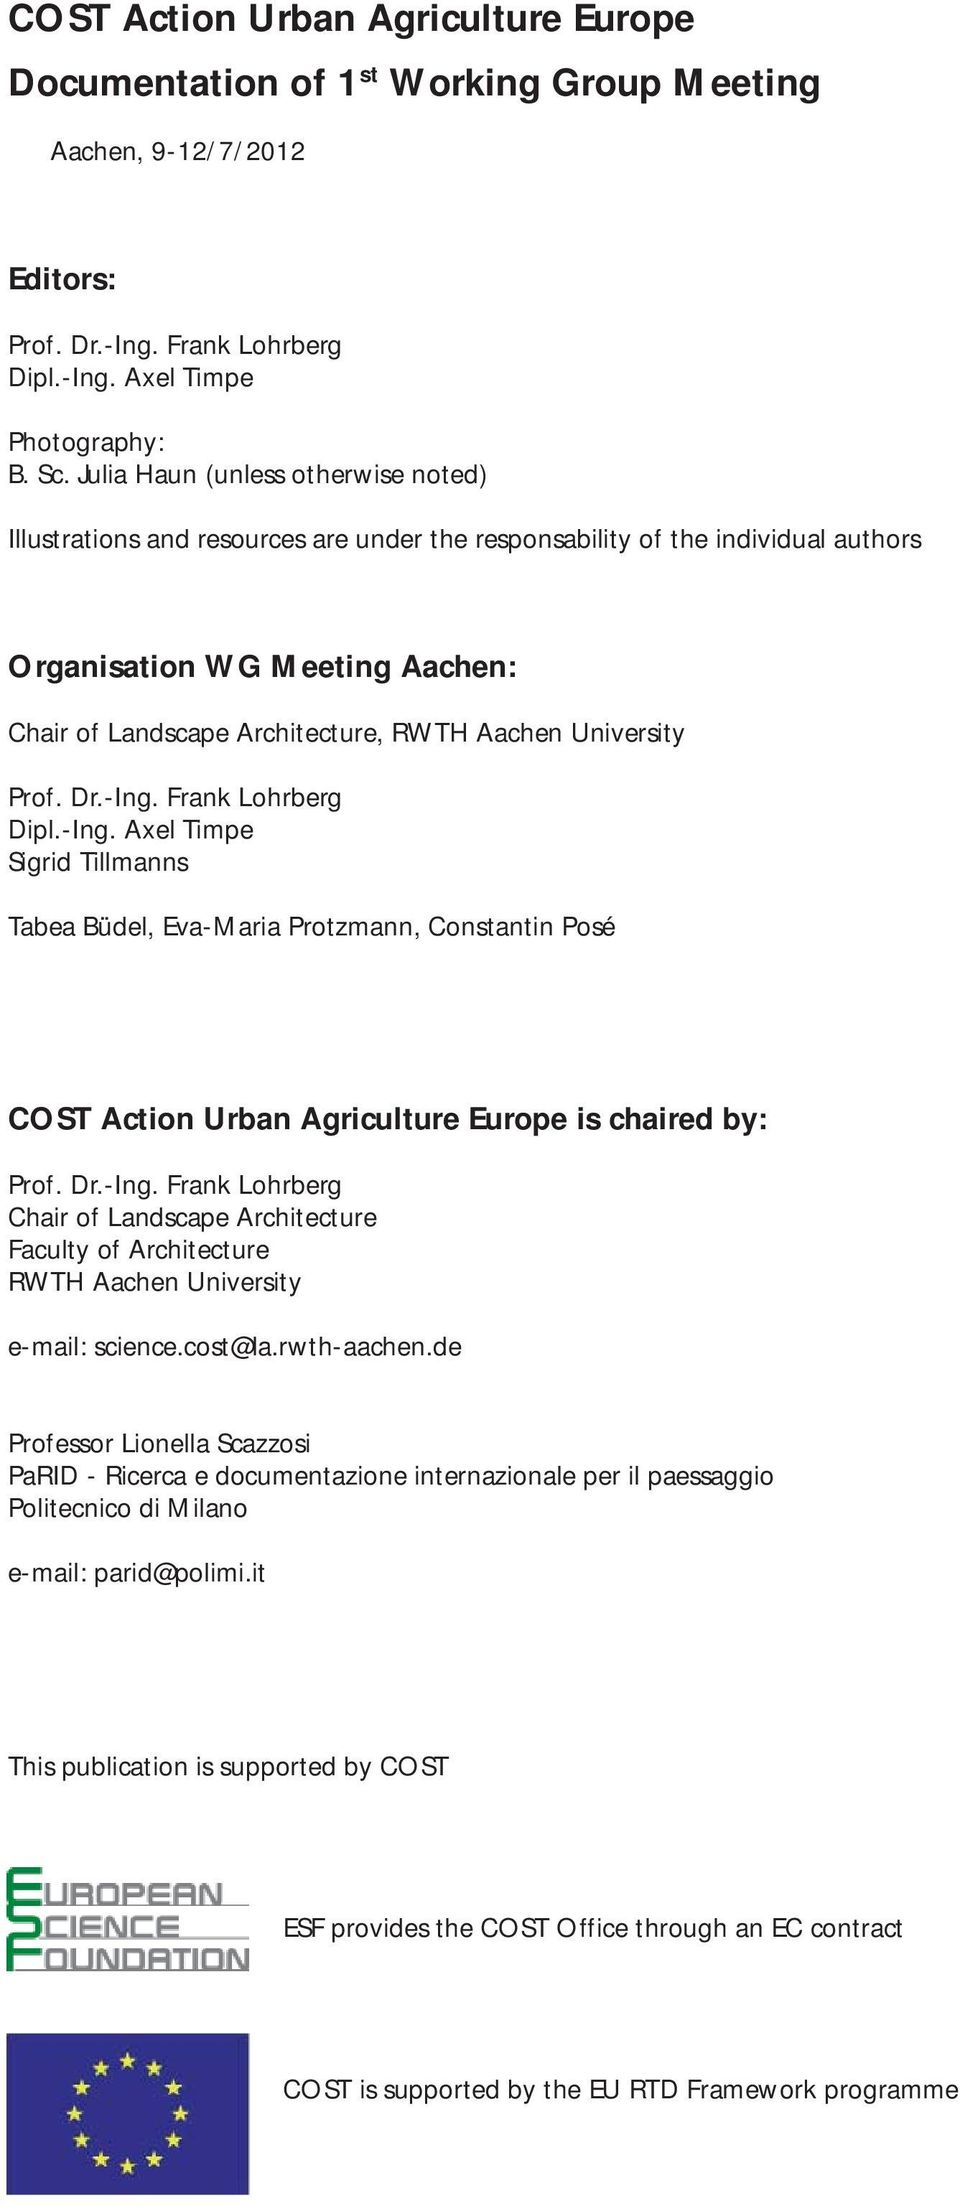 University Prof. Dr.-Ing. Frank Lohrberg Dipl.-Ing. Axel Timpe Sigrid Tillmanns Tabea Büdel, Eva-Maria Protzmann, Constantin Posé COST Action Urban Agriculture Europe is chaired by: Prof. Dr.-Ing. Frank Lohrberg Chair of Landscape Architecture Faculty of Architecture RWTH Aachen University e-mail: science.